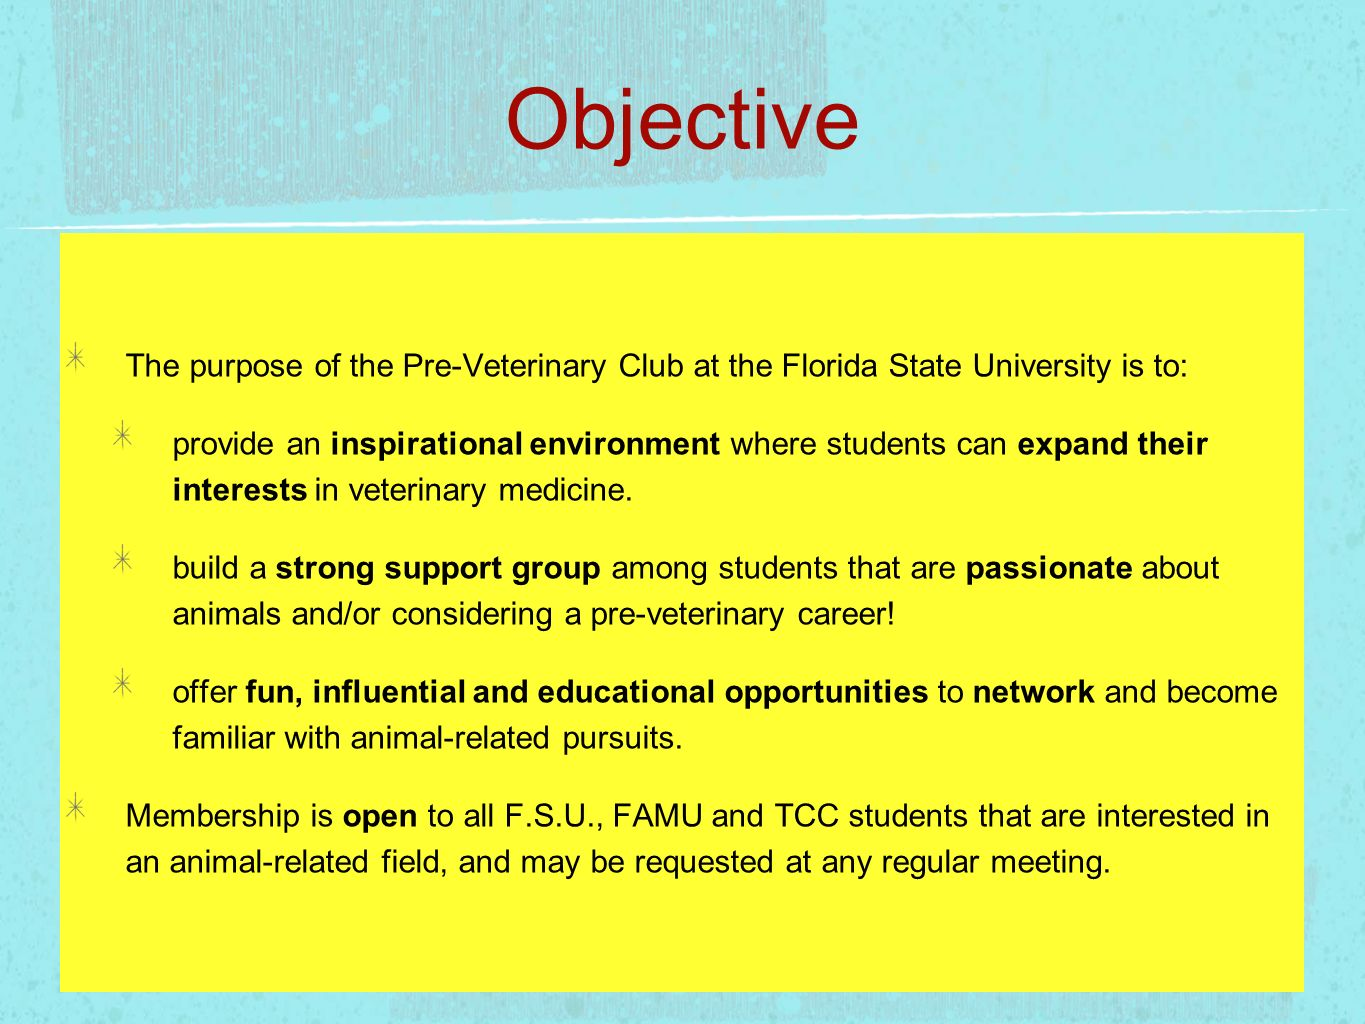 ObjectiveThe purpose of the Pre-Veterinary Club at the Florida State University is to: